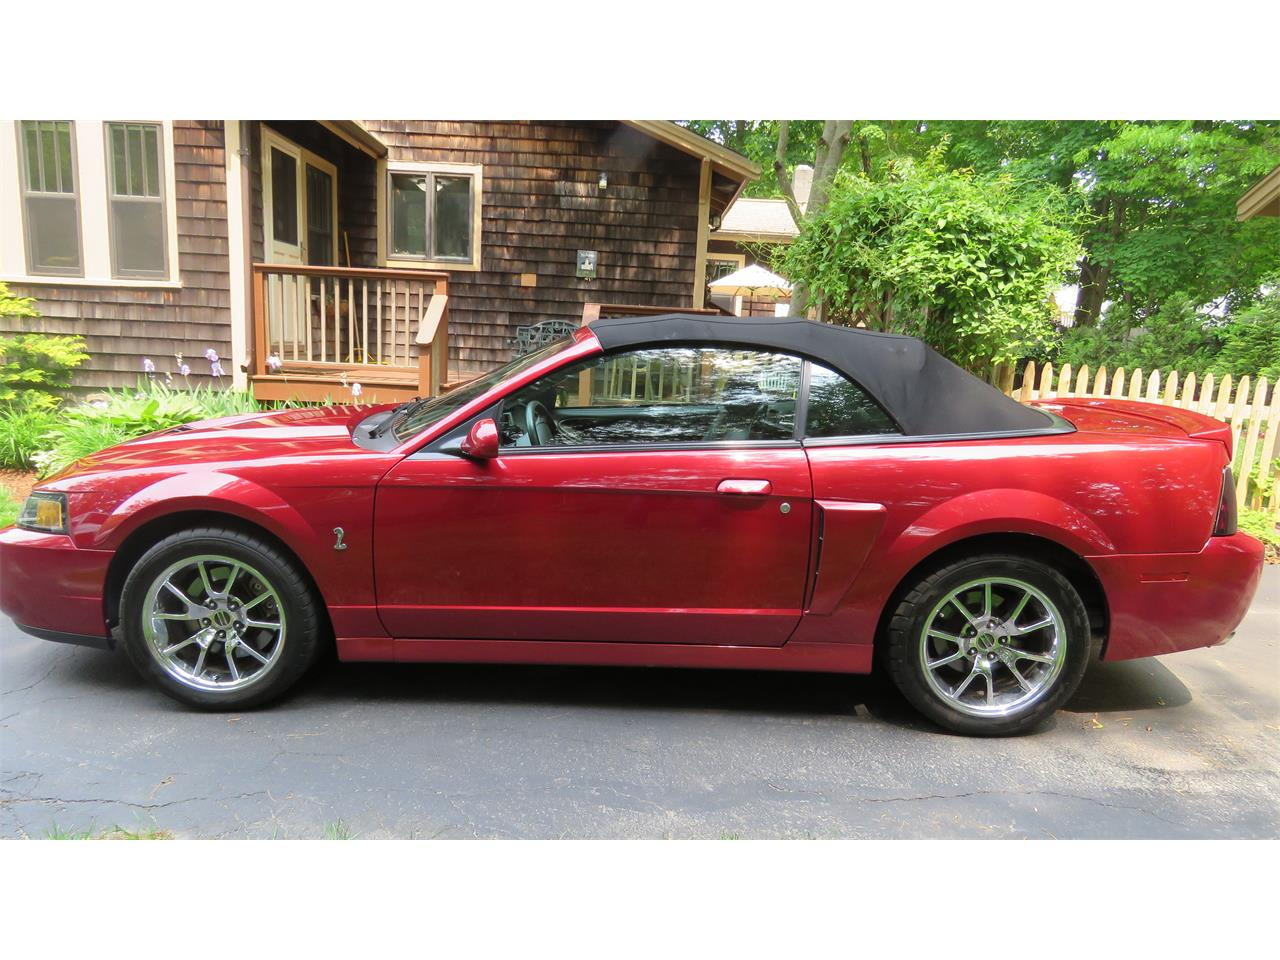 Large Picture of '04 Mustang SVT Cobra - $23,000.00 - QBSO